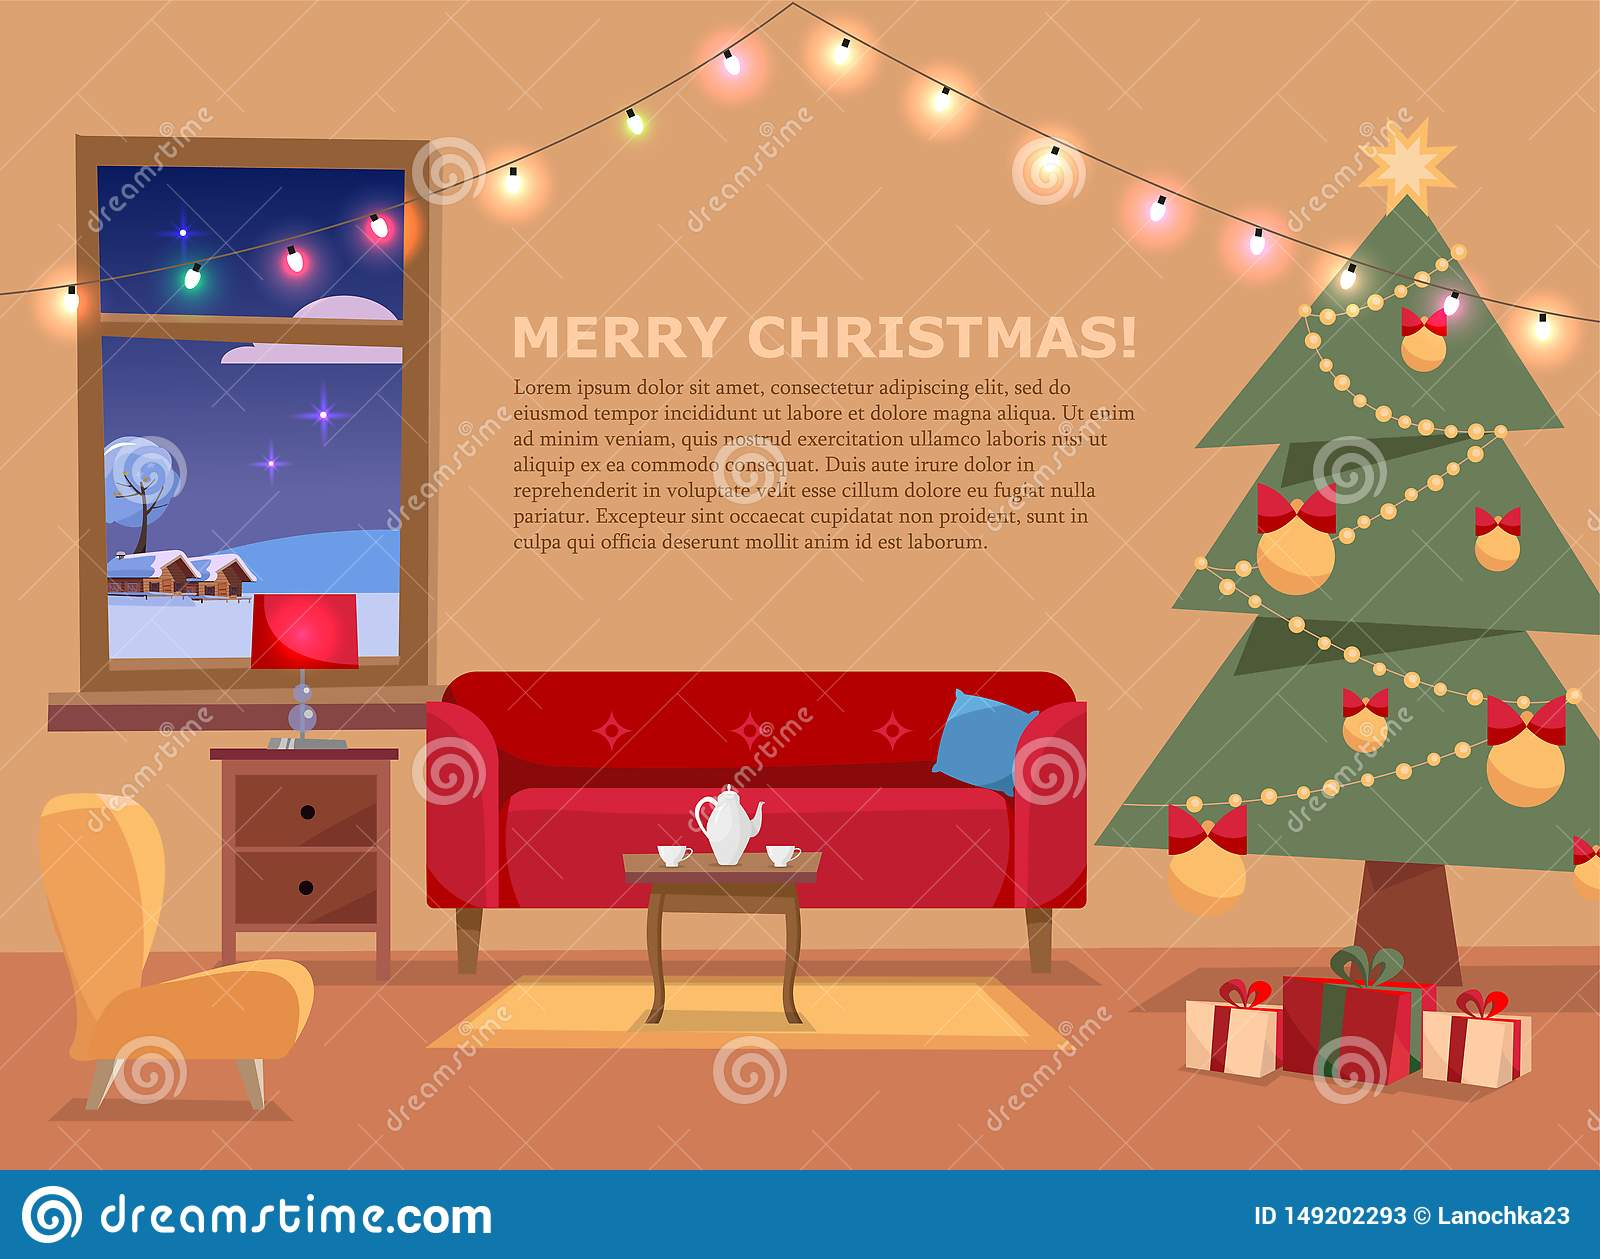 Christmas banner with flat vector illustration of living room decorated for holidays. Cozy home interior with furniture, sofa,